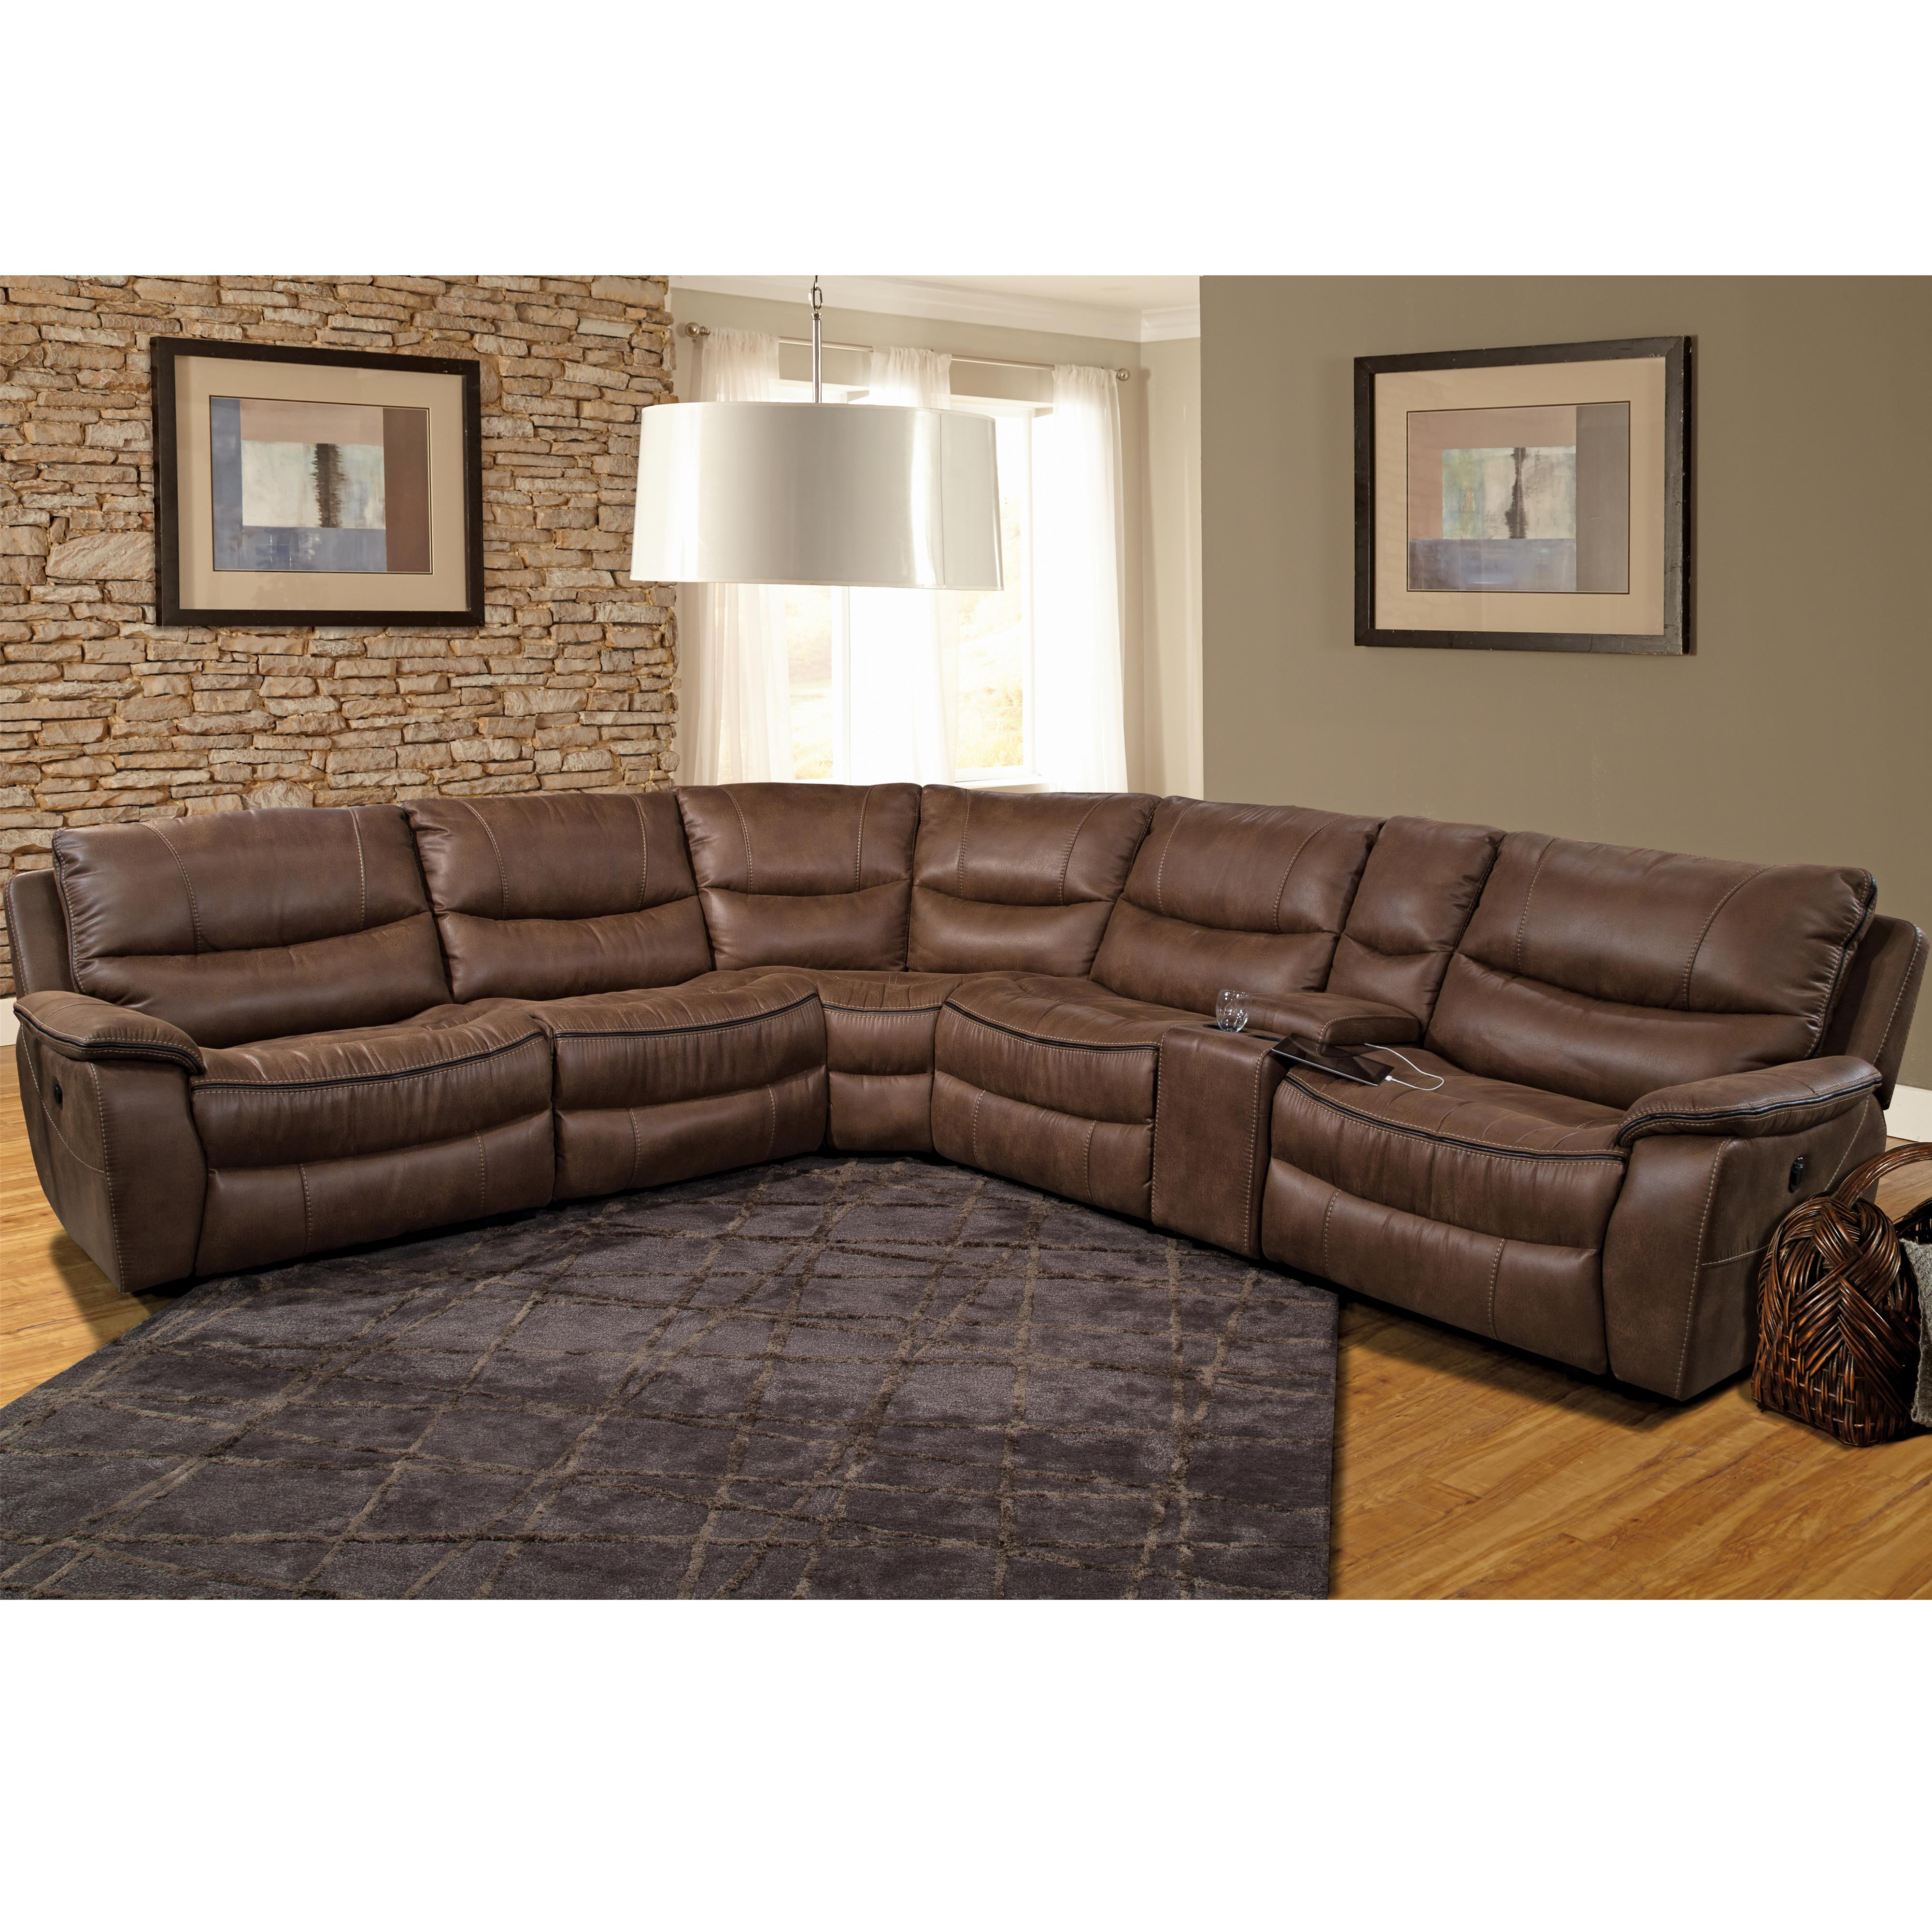 Parker Living Remus Casual Power Sectional Recliner - Item Number: MREM-PACKM-ST